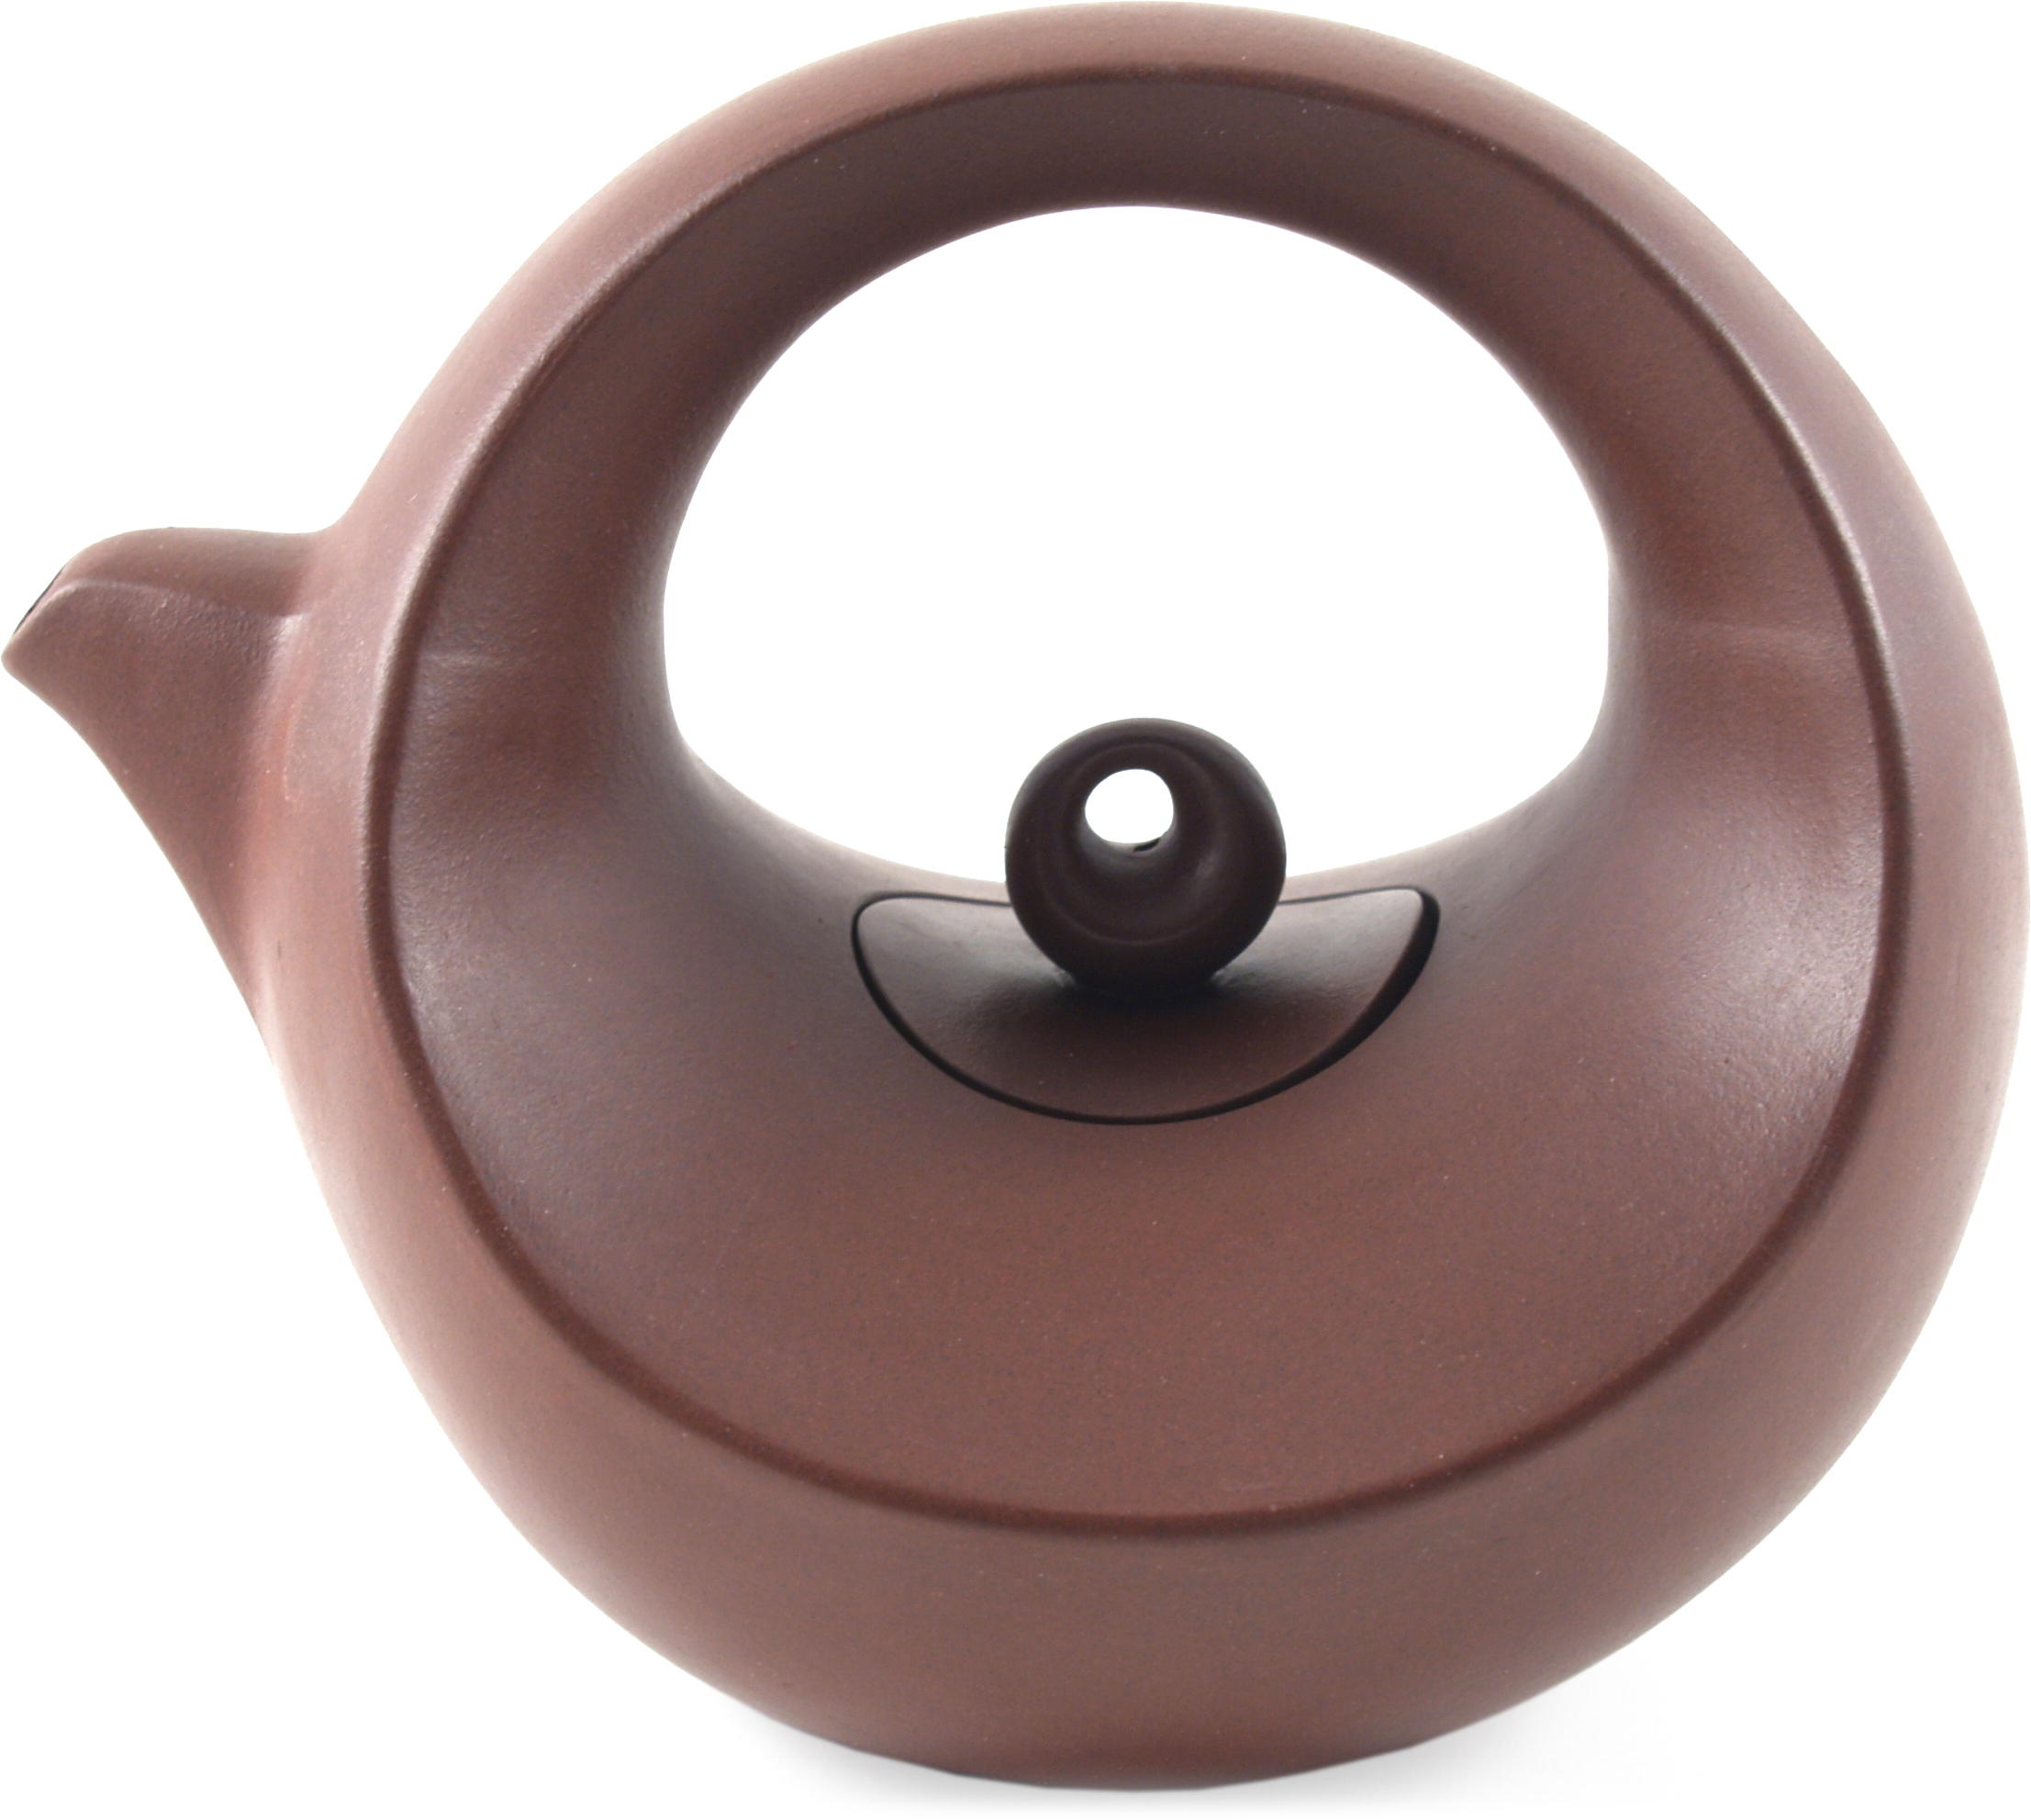 Brown Concentric Circle Yixing Teapot, 20 Ounce